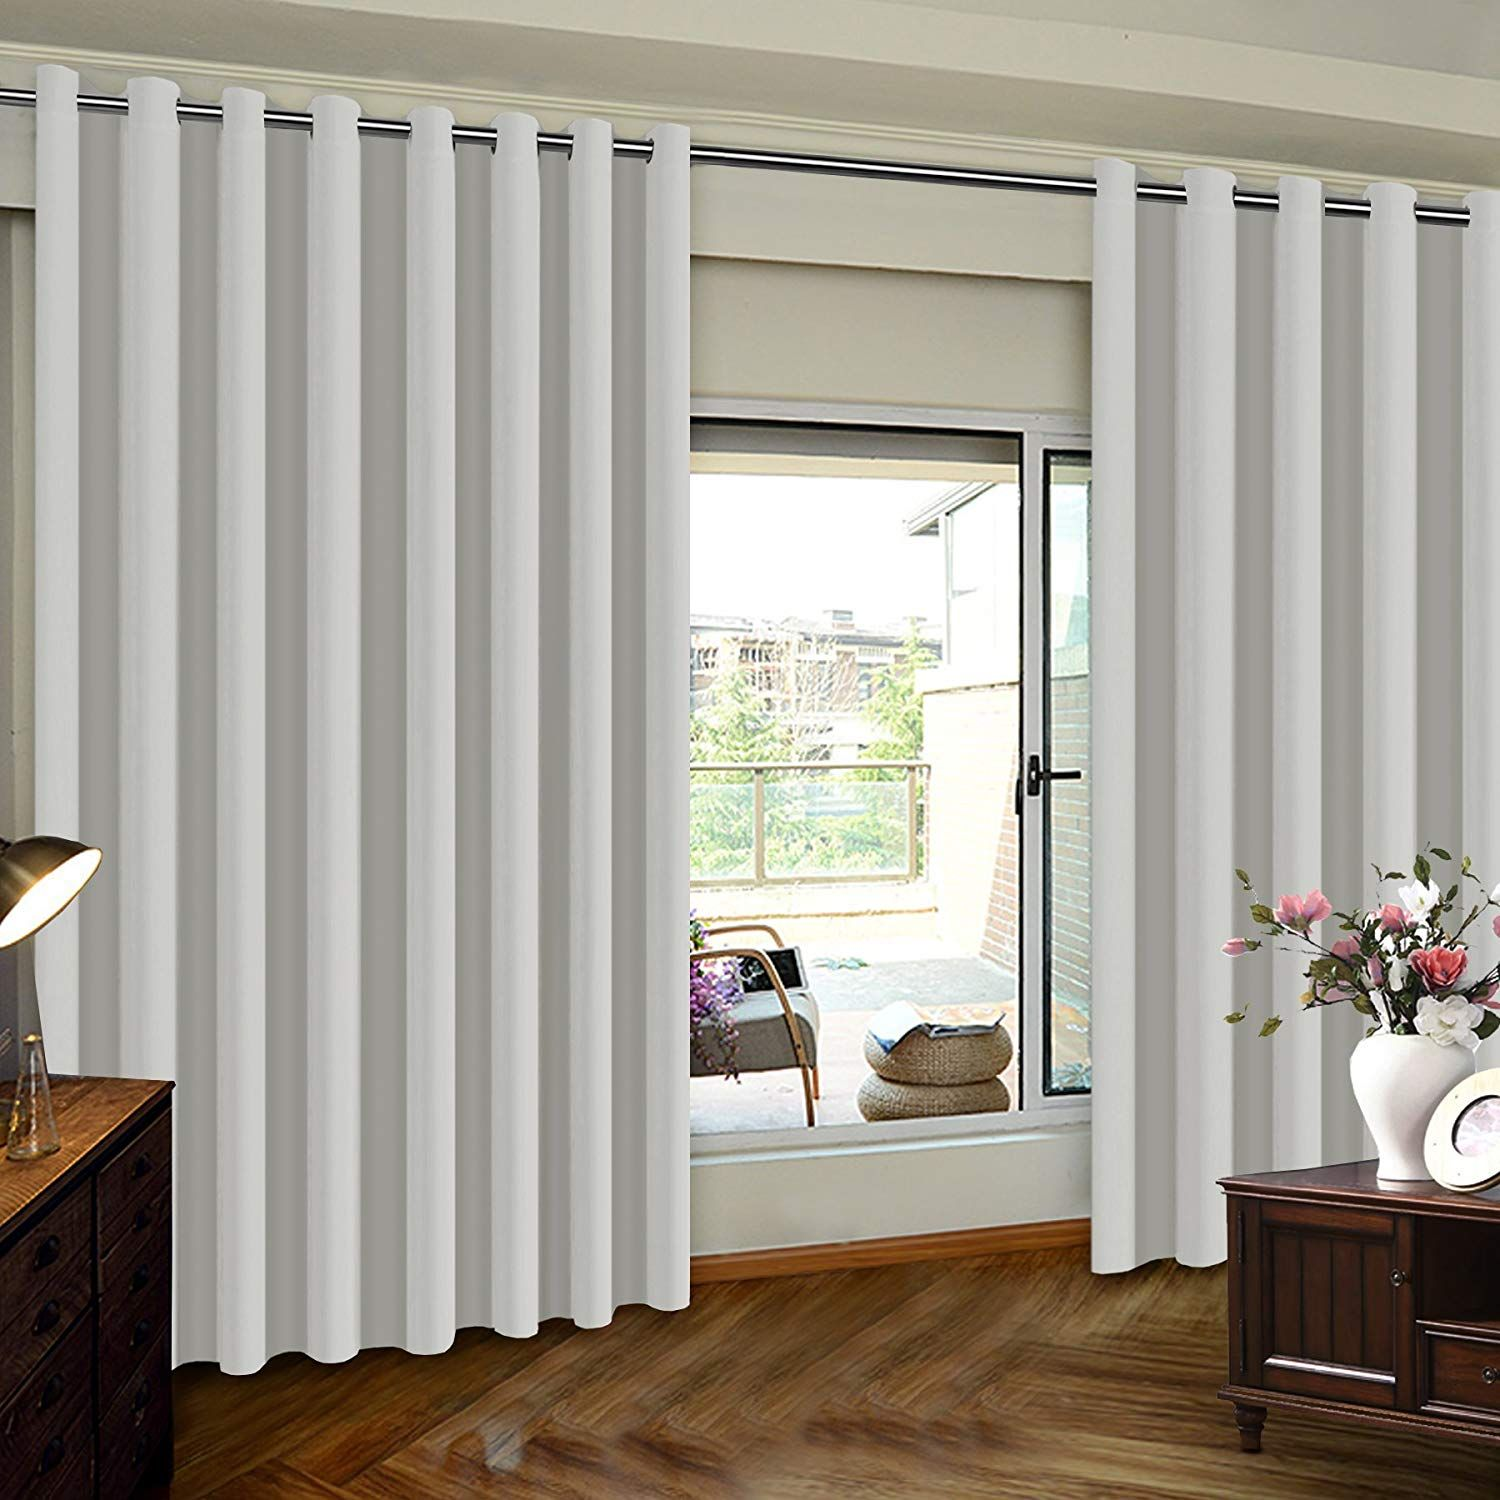 Top Best Room Divider Curtain in Reviews Top Best Pro